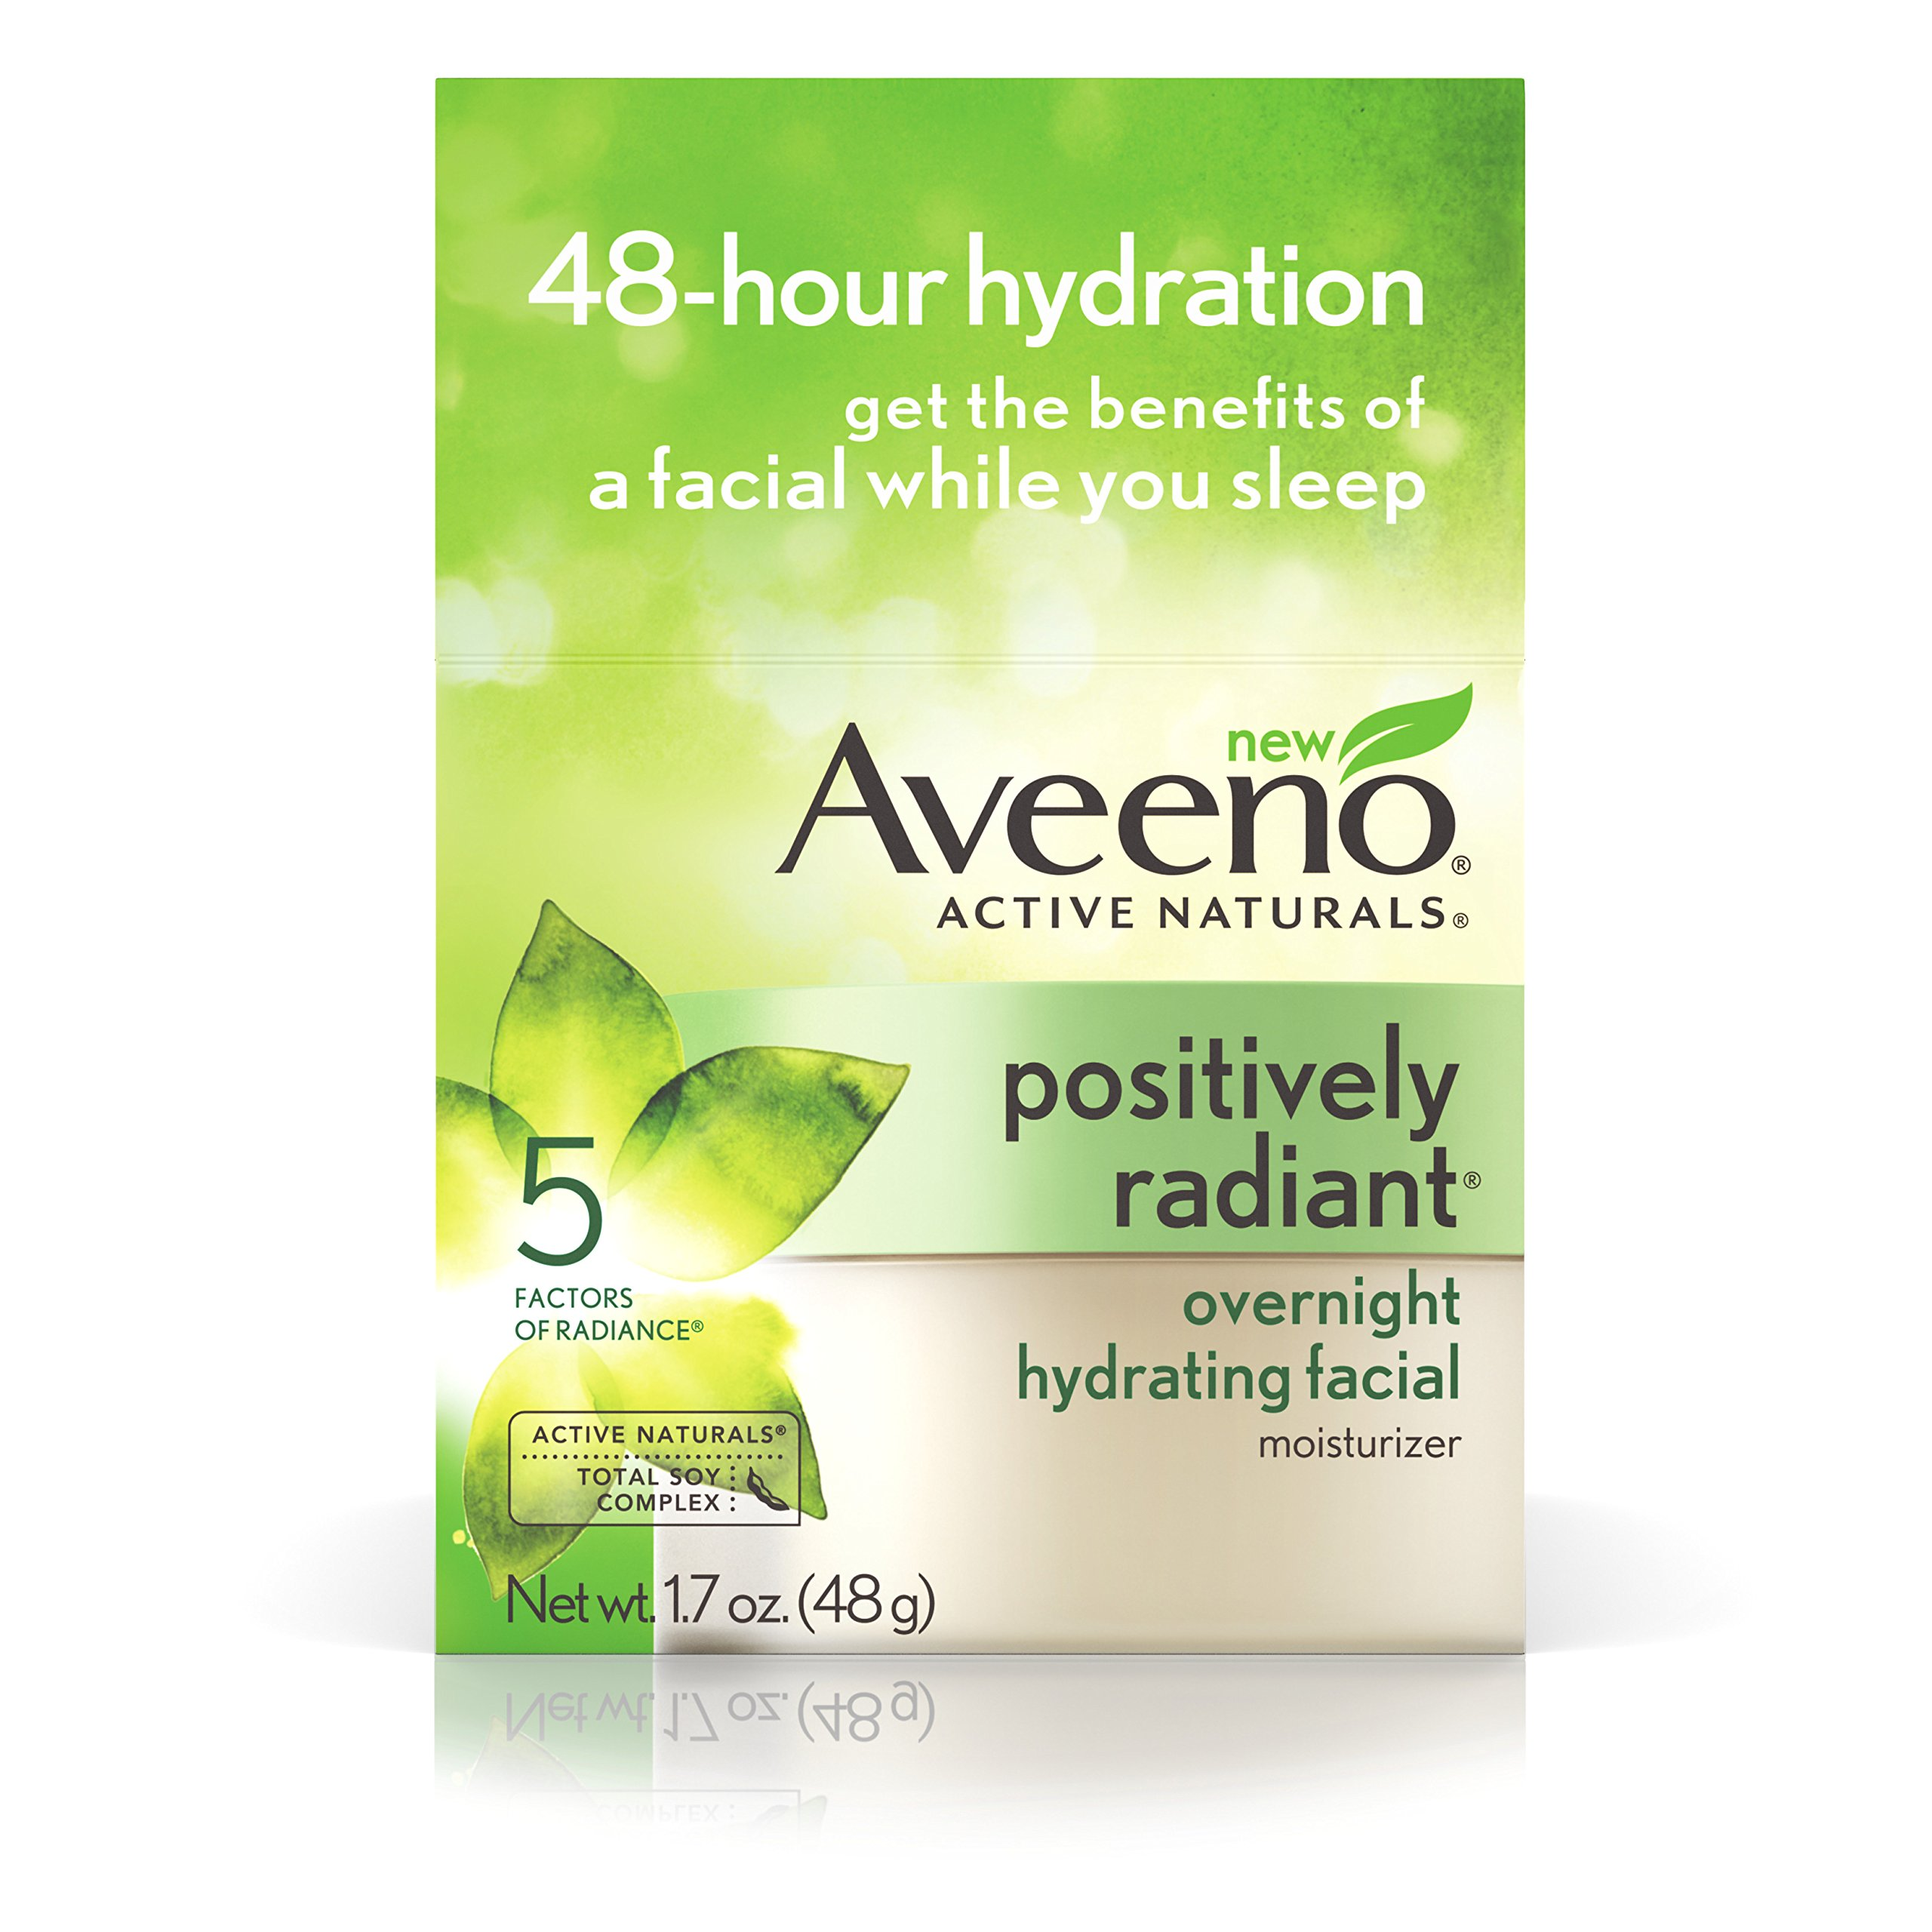 Aveeno Active Naturals Positively Radiant Overnight Hydrating Facial Moisturizer, 1.7 Oz